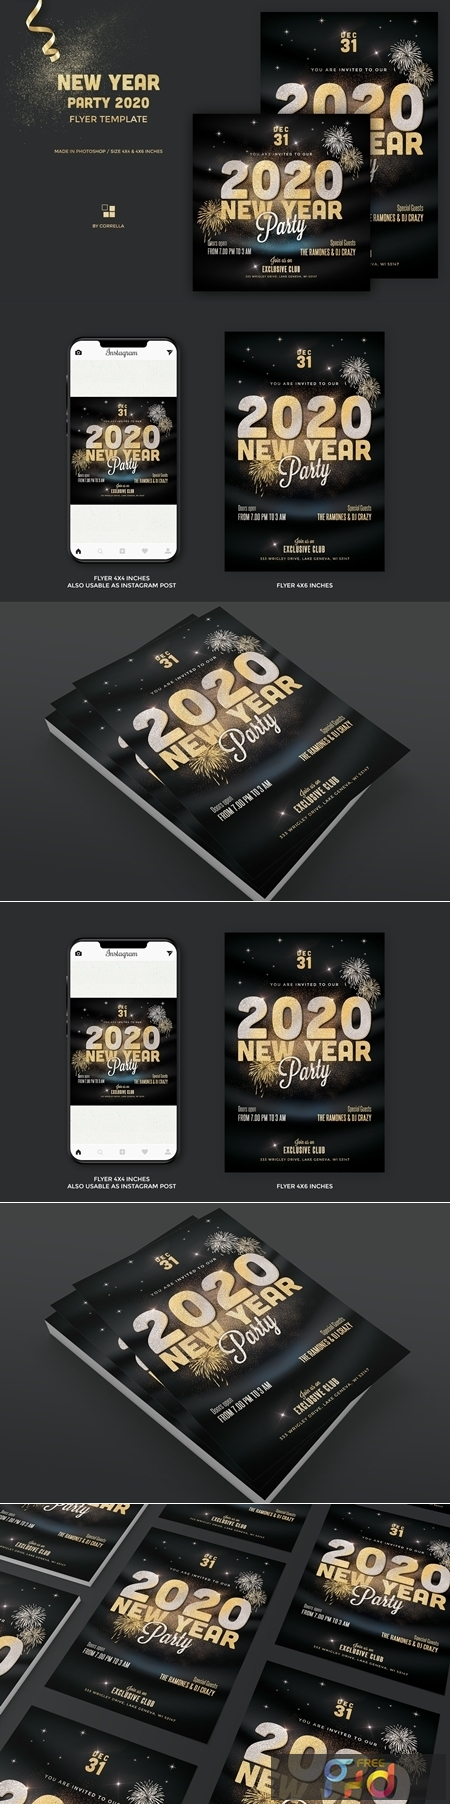 New Year Party Flyer Gold 4385454 1